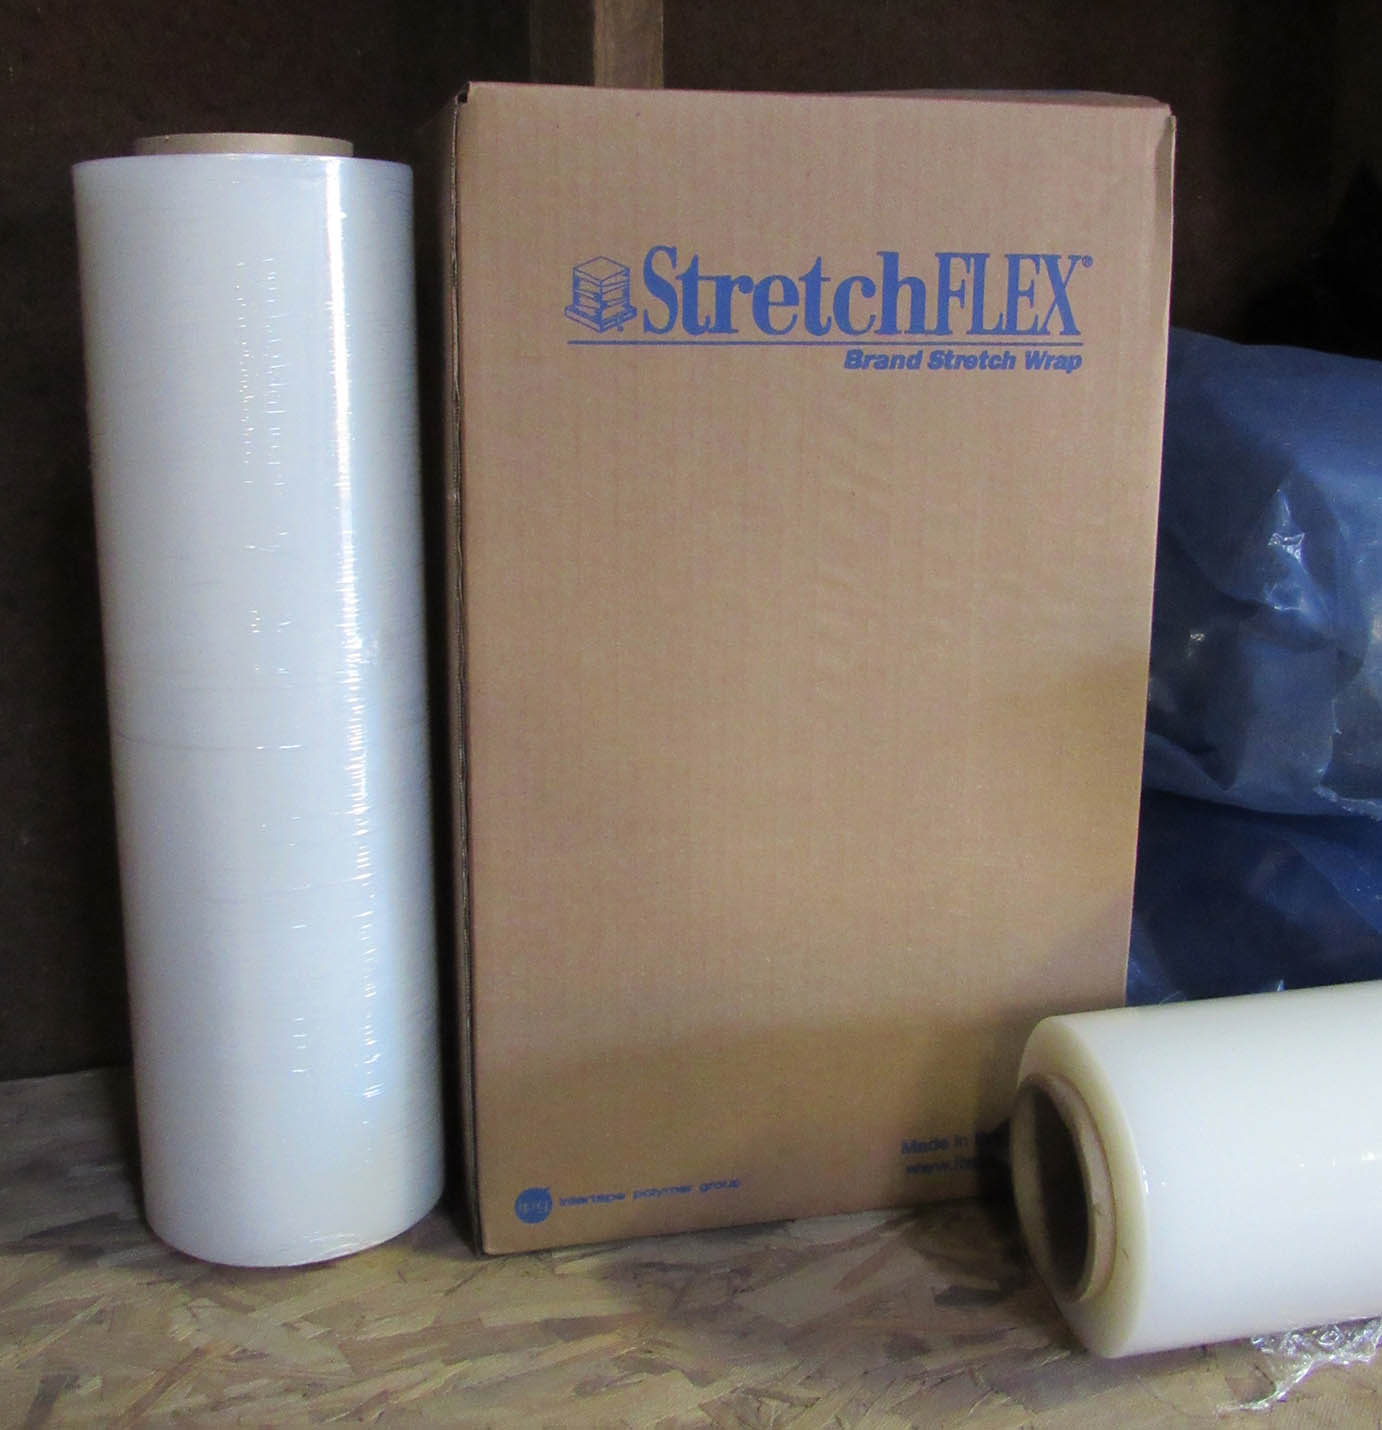 supplier-of-stretchflex-brand-stretch-wrap-rolls-for-industrial-use-IMG_2240-web.JPG